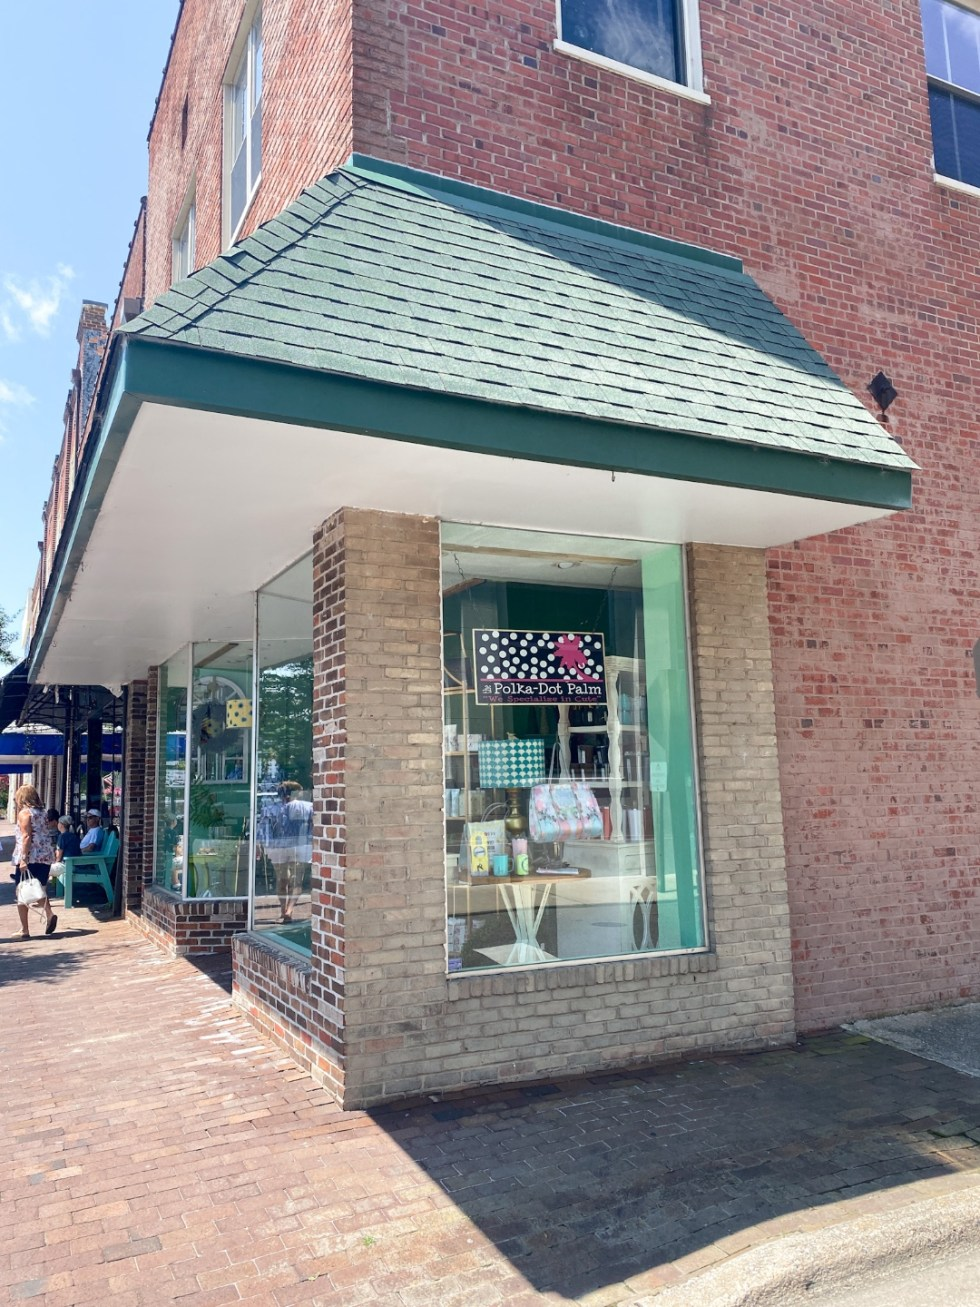 Top 10 Best Things to Do in Edenton, NC: A Complete Travel Guide - I'm Fixin' To - @imfixintoblog | Edenton Travel Guide by popular NC travel guid, I'm Fixin' To: image of Polka Dot Palm.